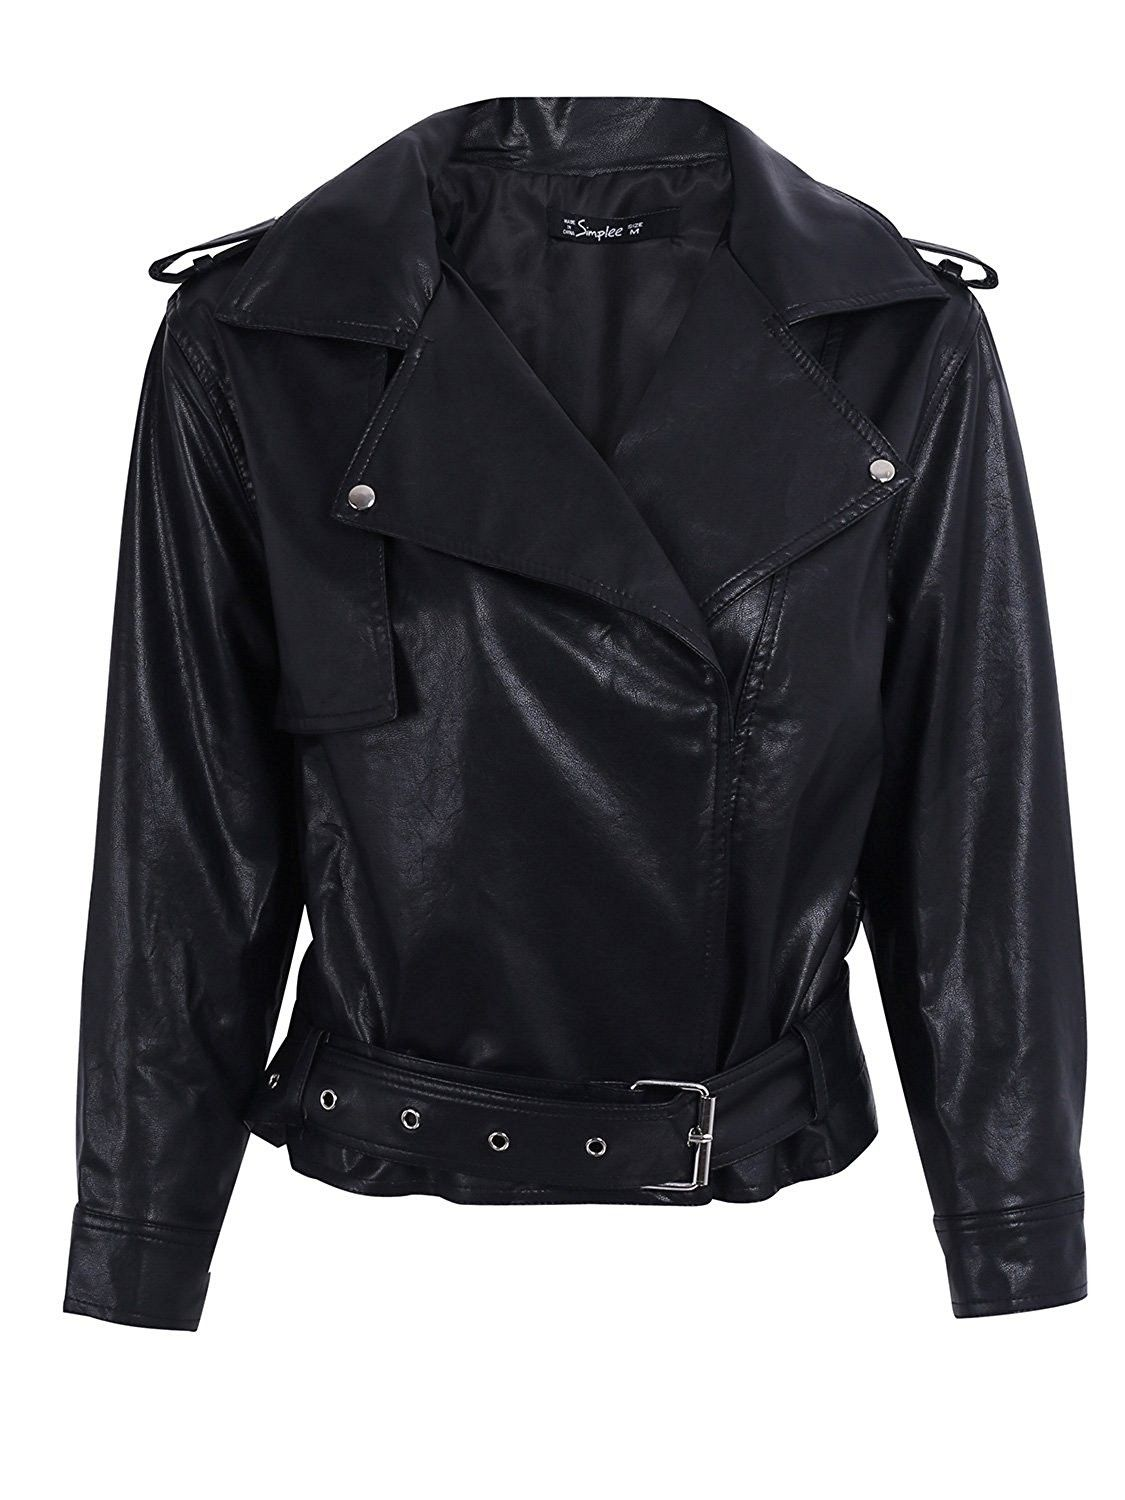 Simplee Women S Casual Loose 3 4 Sleeve Oversized Faux Leather Pu Jacket Coat Black C91869gq4o Faux Leather Jacket Women Leather Jacket Leather Coat Womens [ 1500 x 1125 Pixel ]